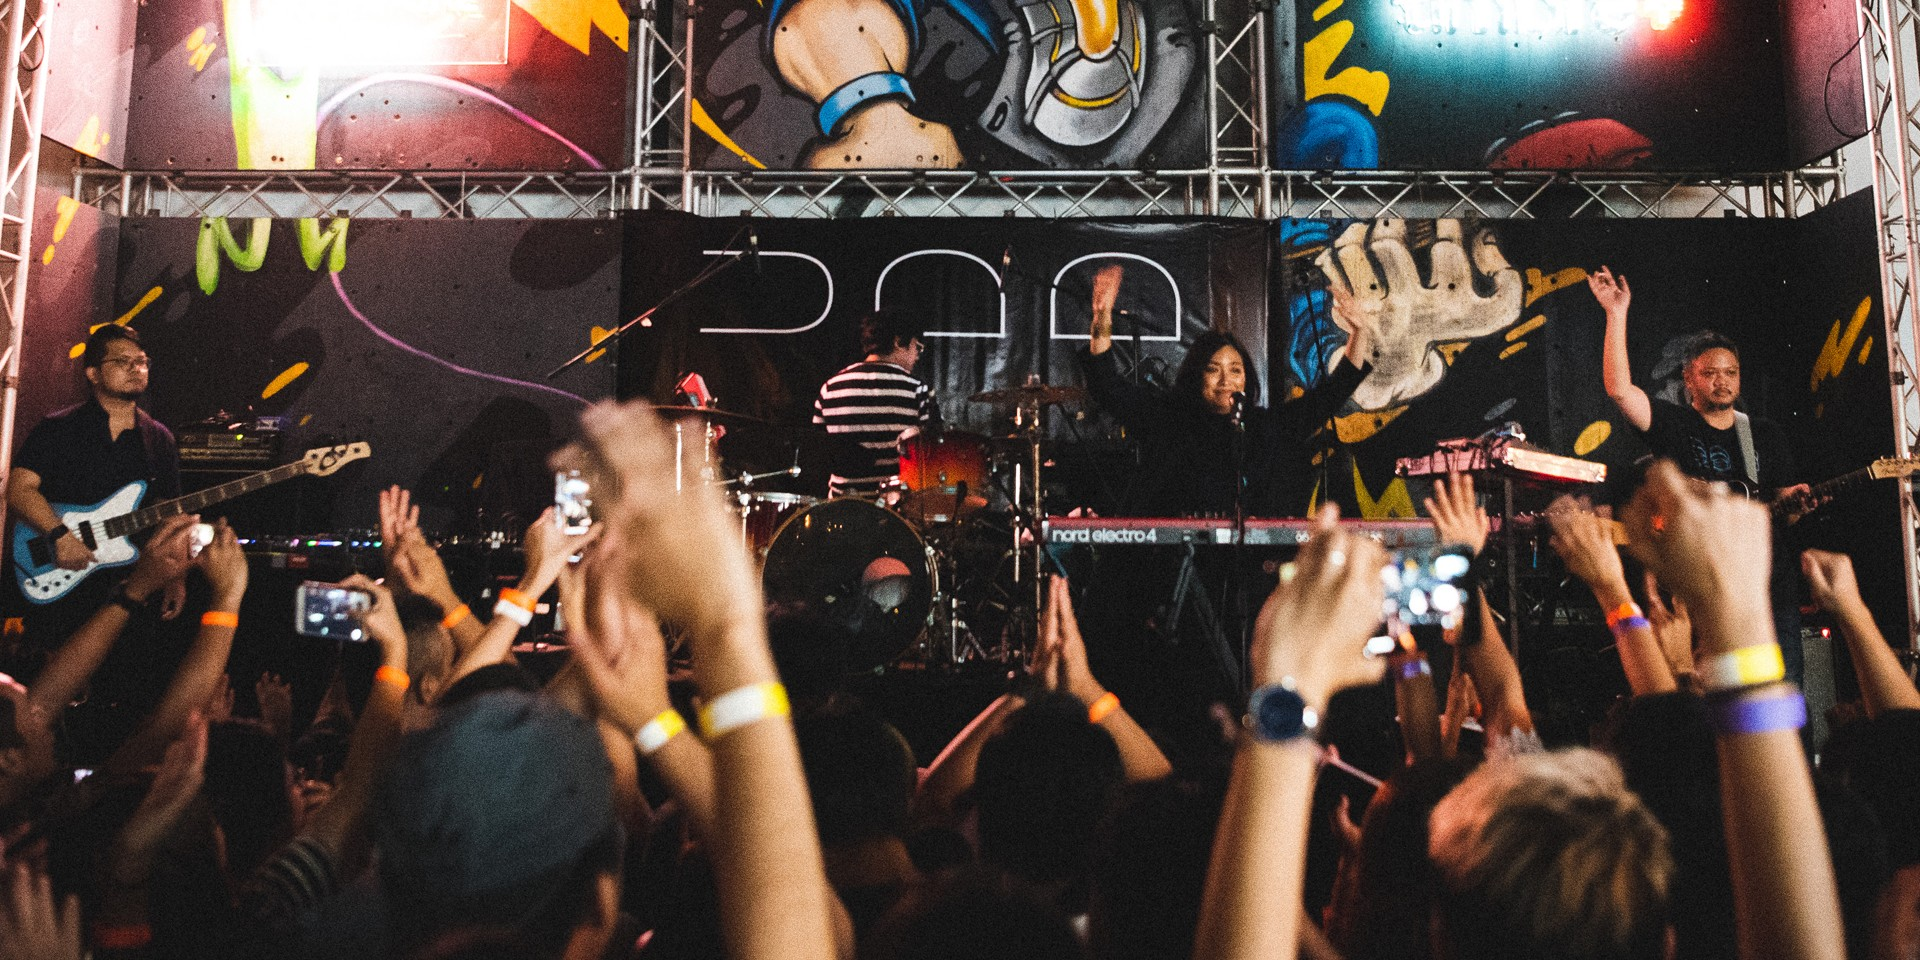 """We got to see the results of the latest album"": UDD on their Singapore show – photo gallery"